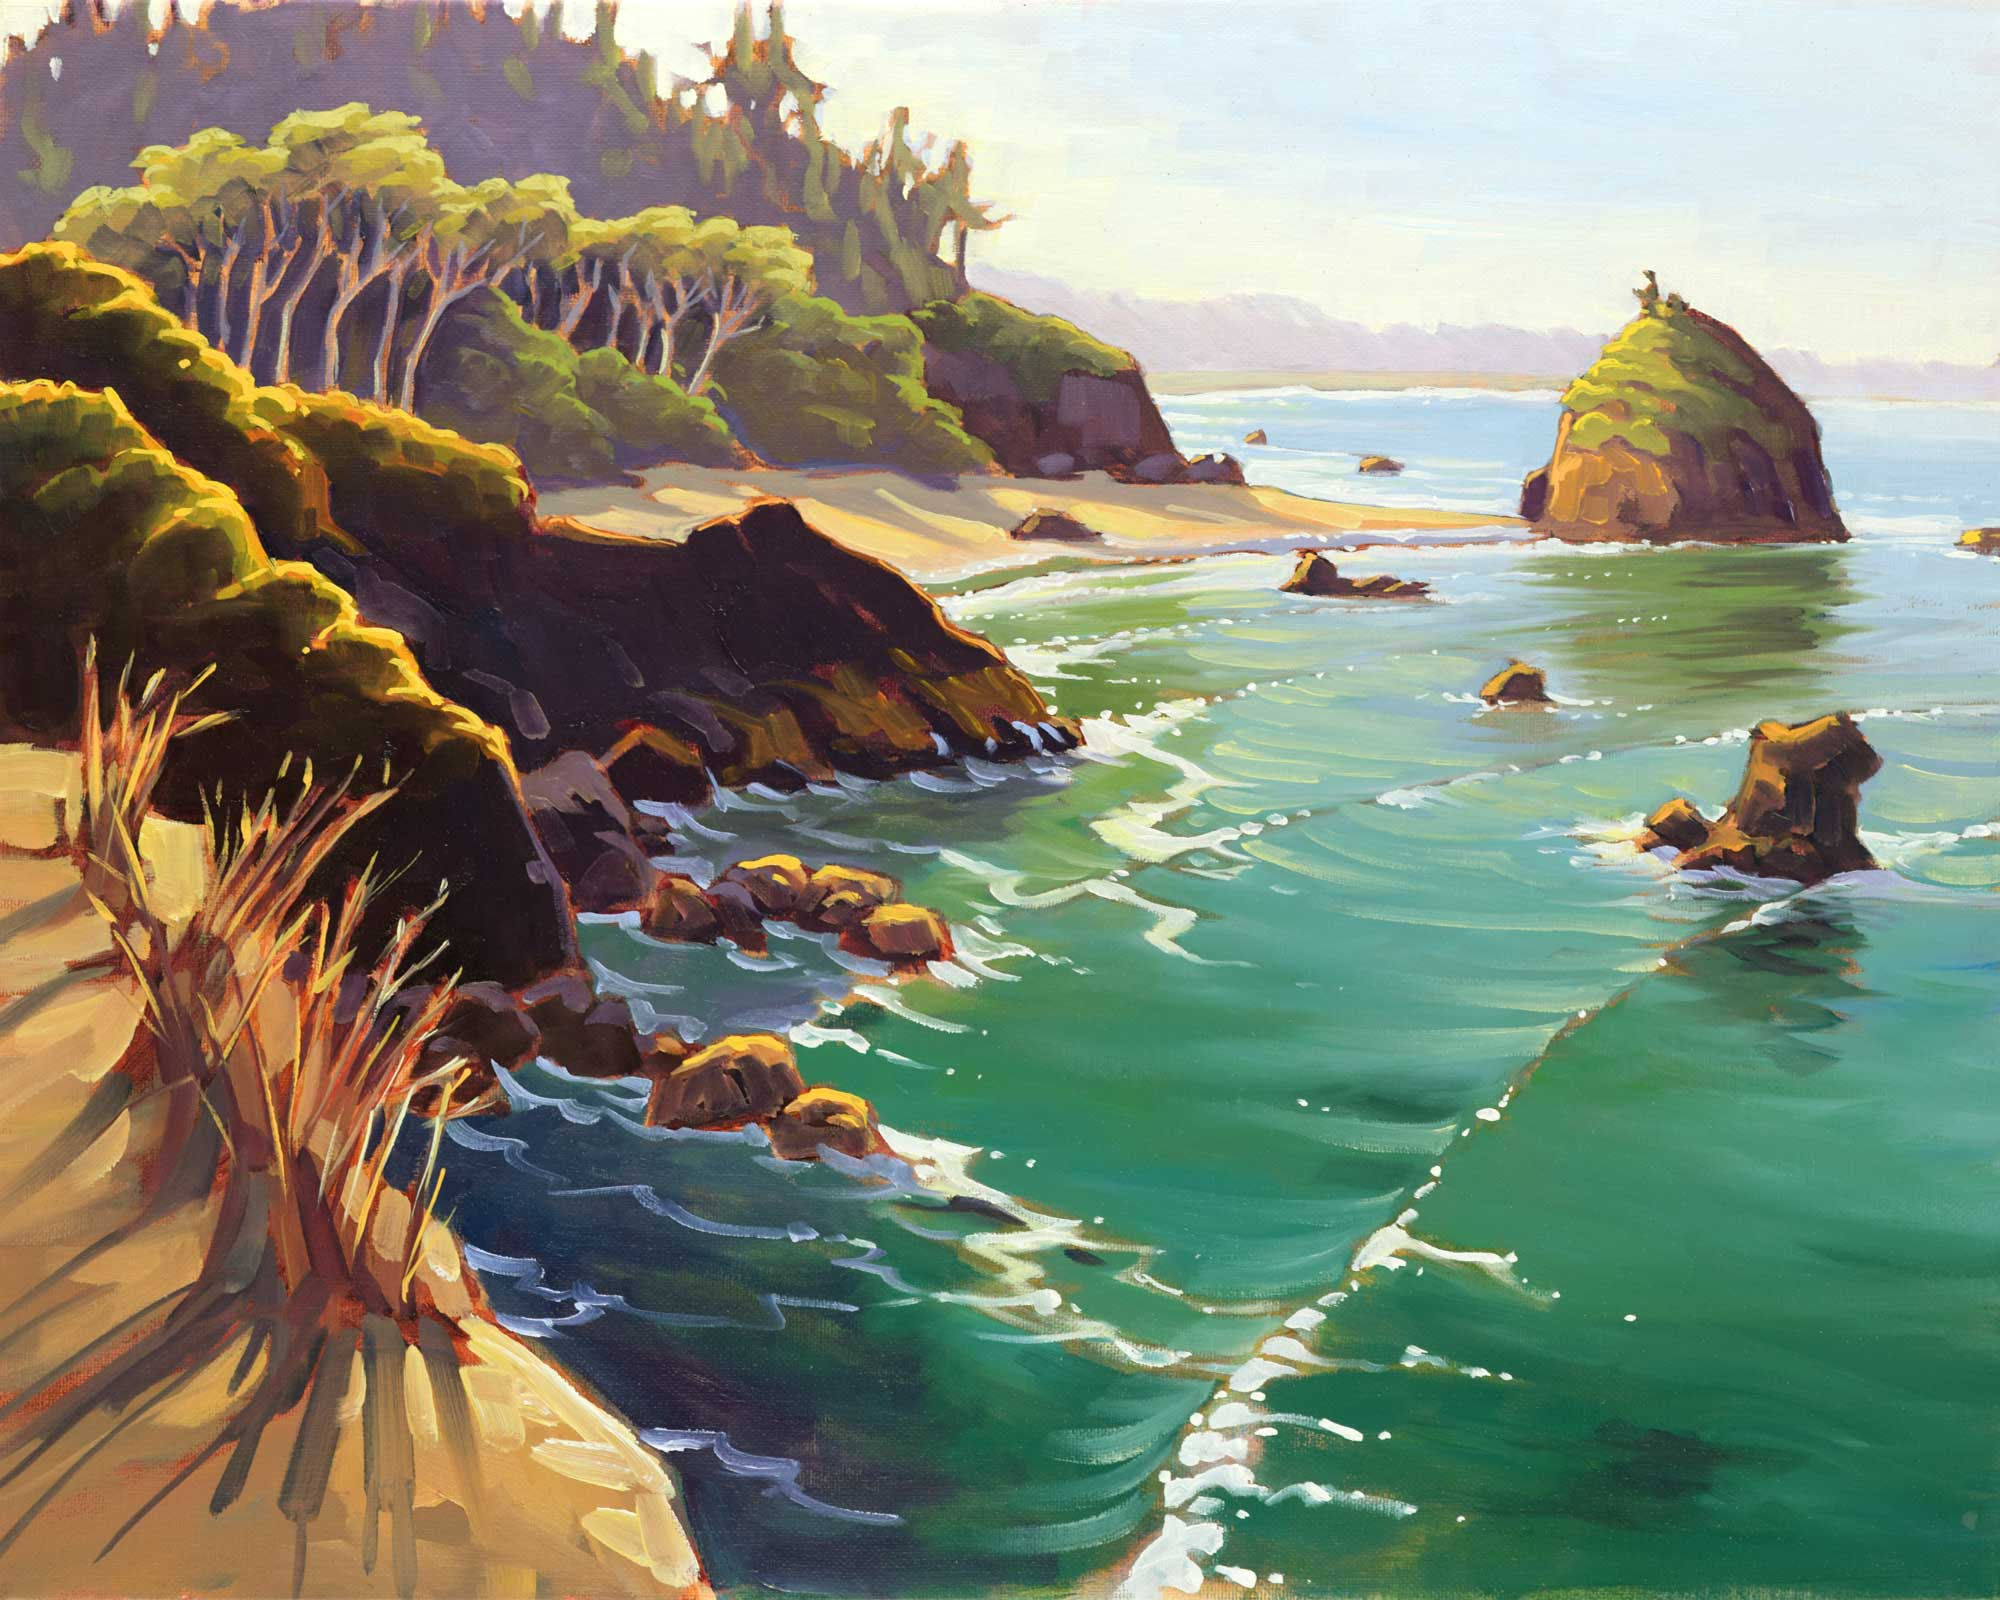 A plein air oil painting from Luffenholtz lookout on the Trinidad coast of Humboldt county in northern California